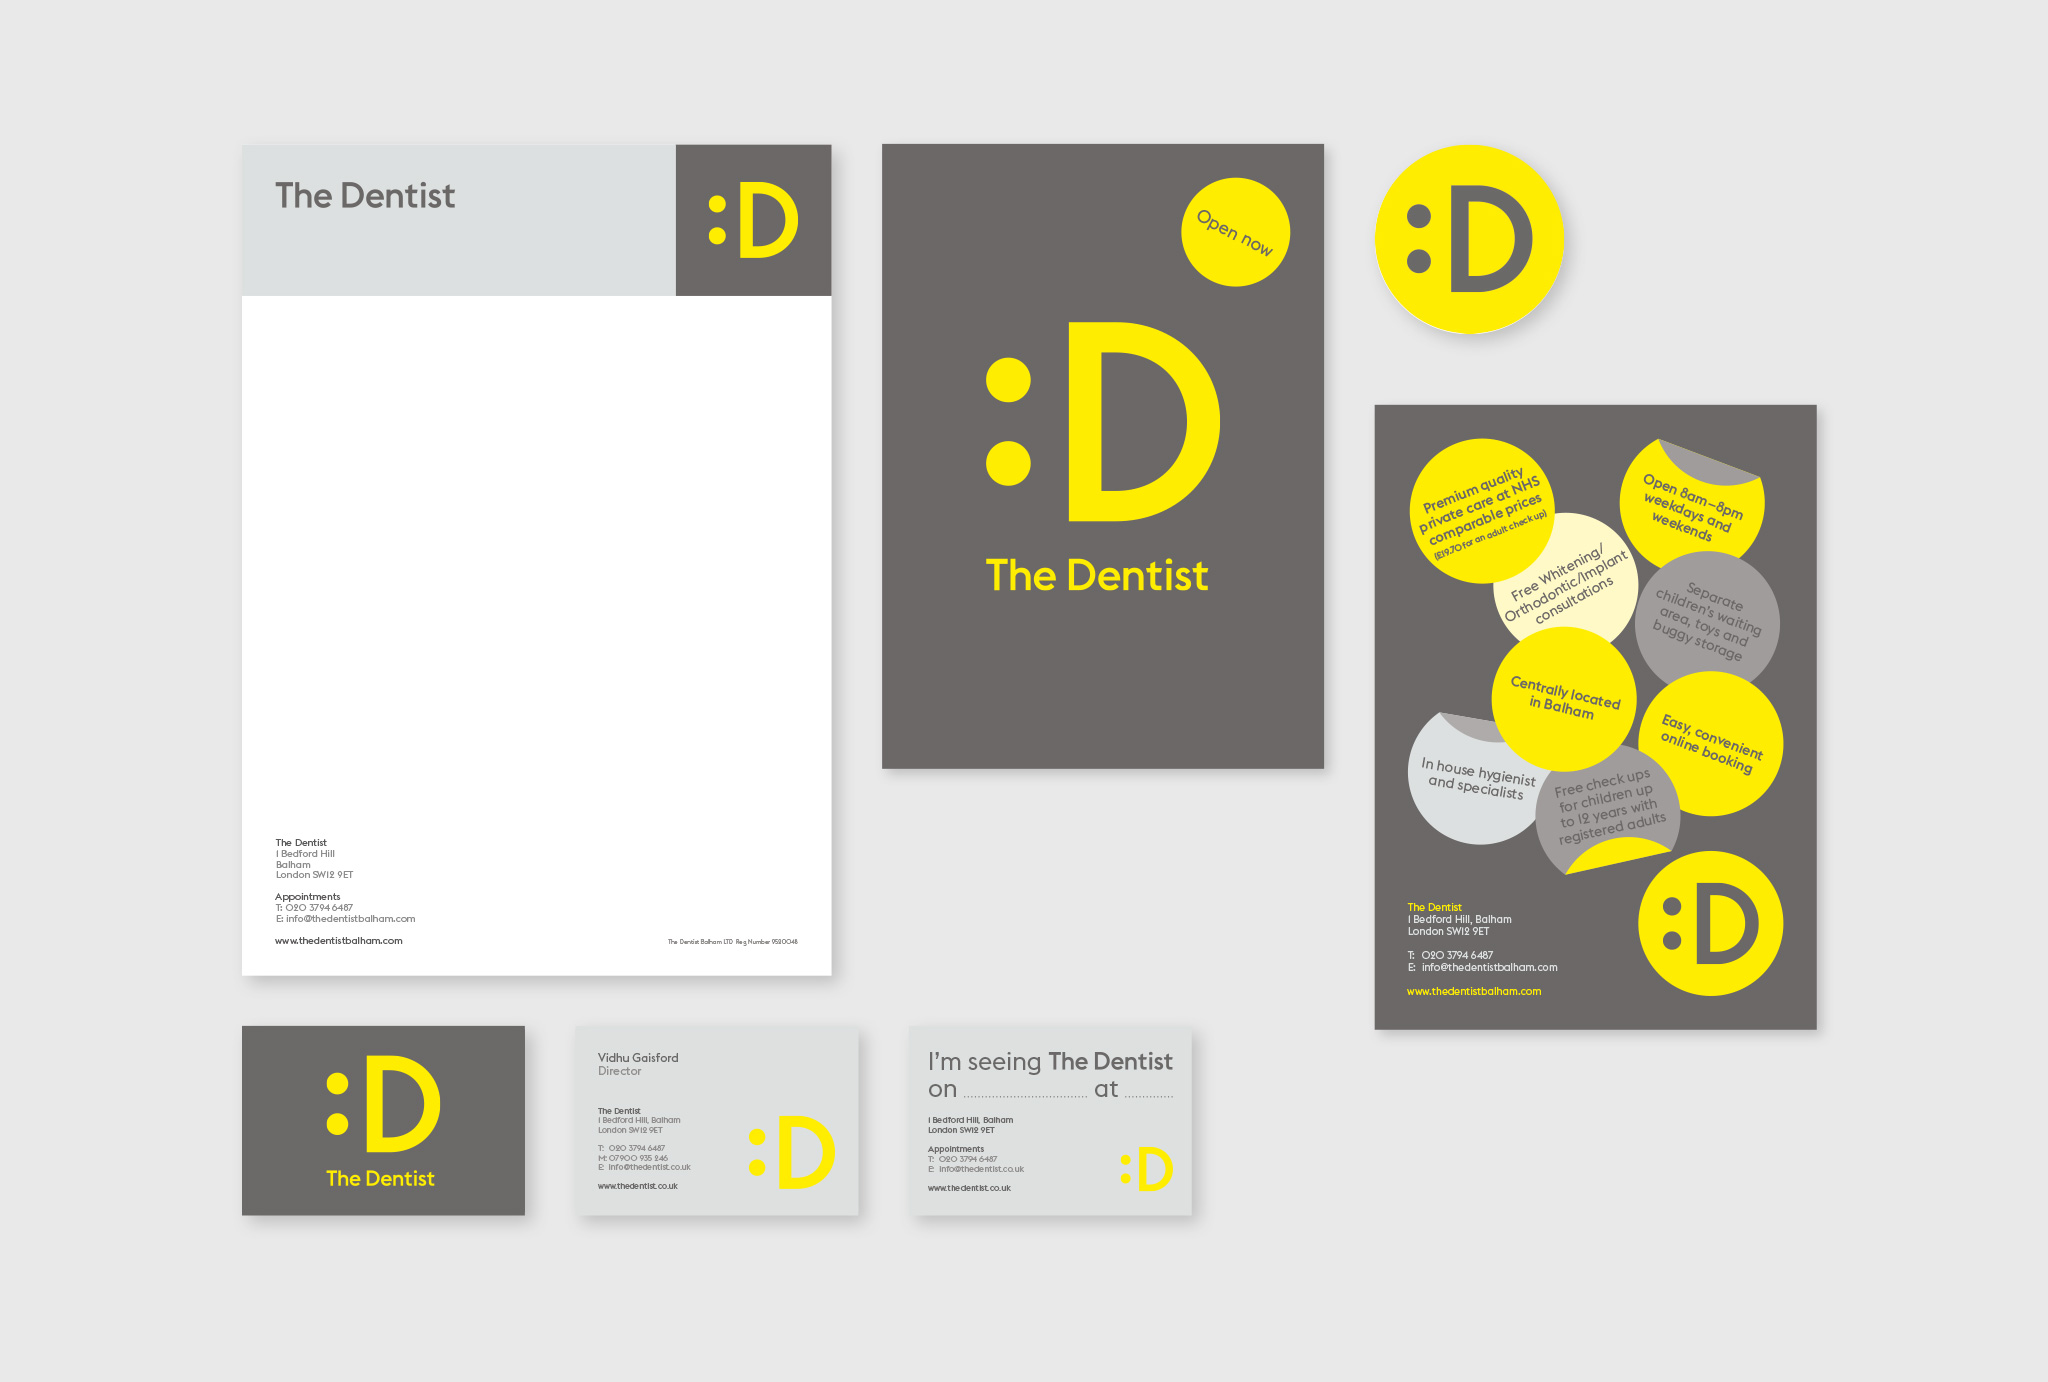 layout design of business cards, letterheads and postcards